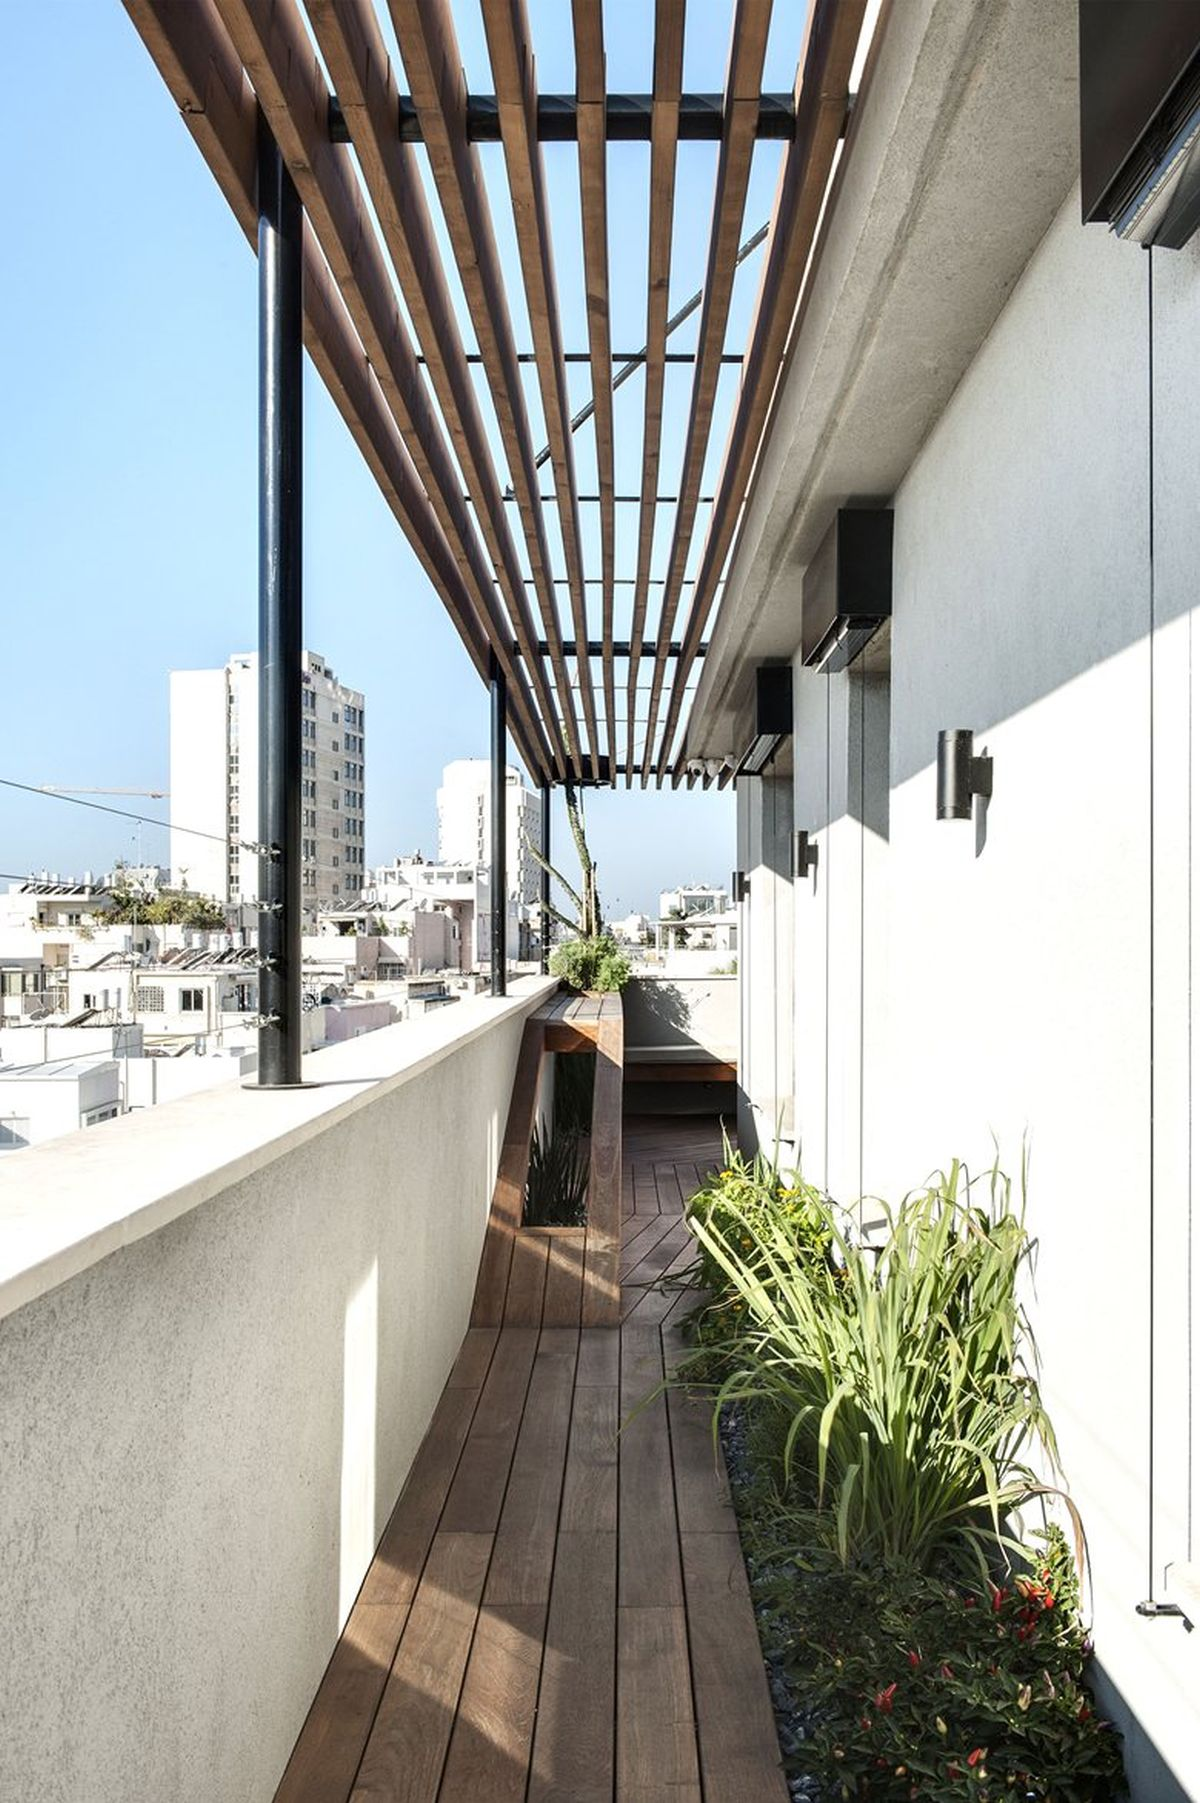 Duplex Penthouse With Roof Terrace Gets A Graphical Redesign